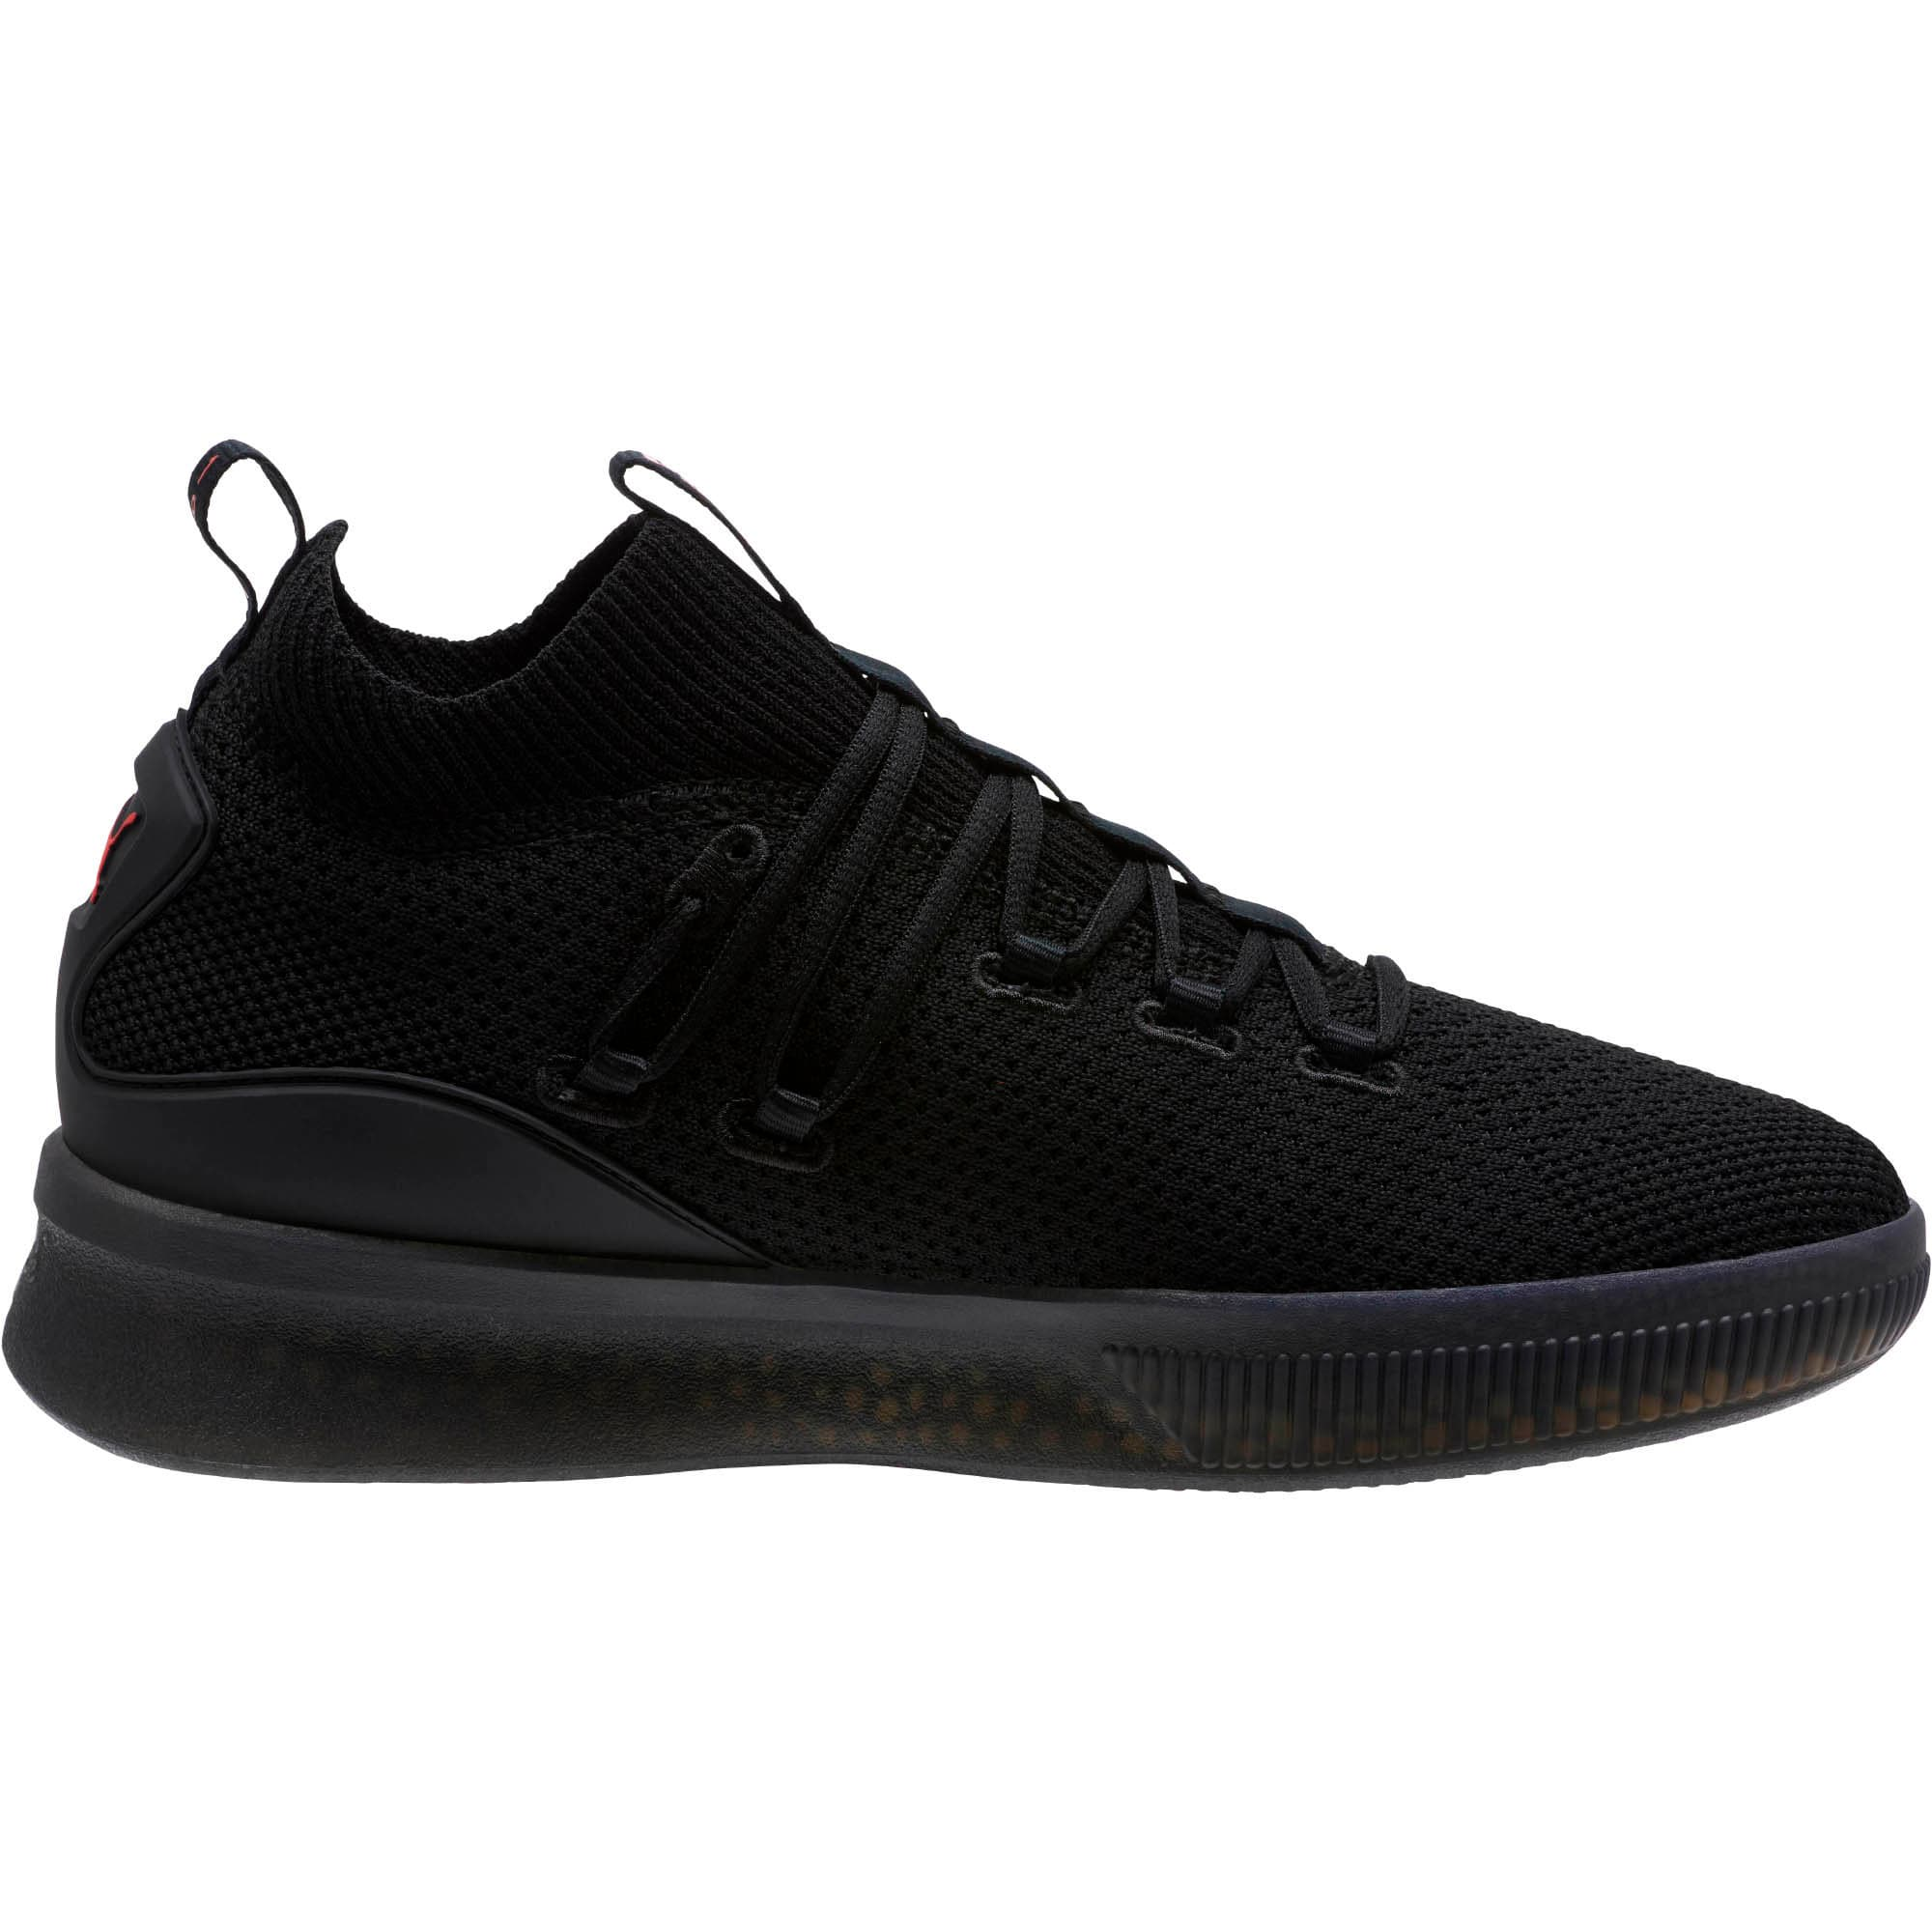 Thumbnail 3 of Clyde Court Core Basketball Shoes, Puma Black-High Risk Red, medium